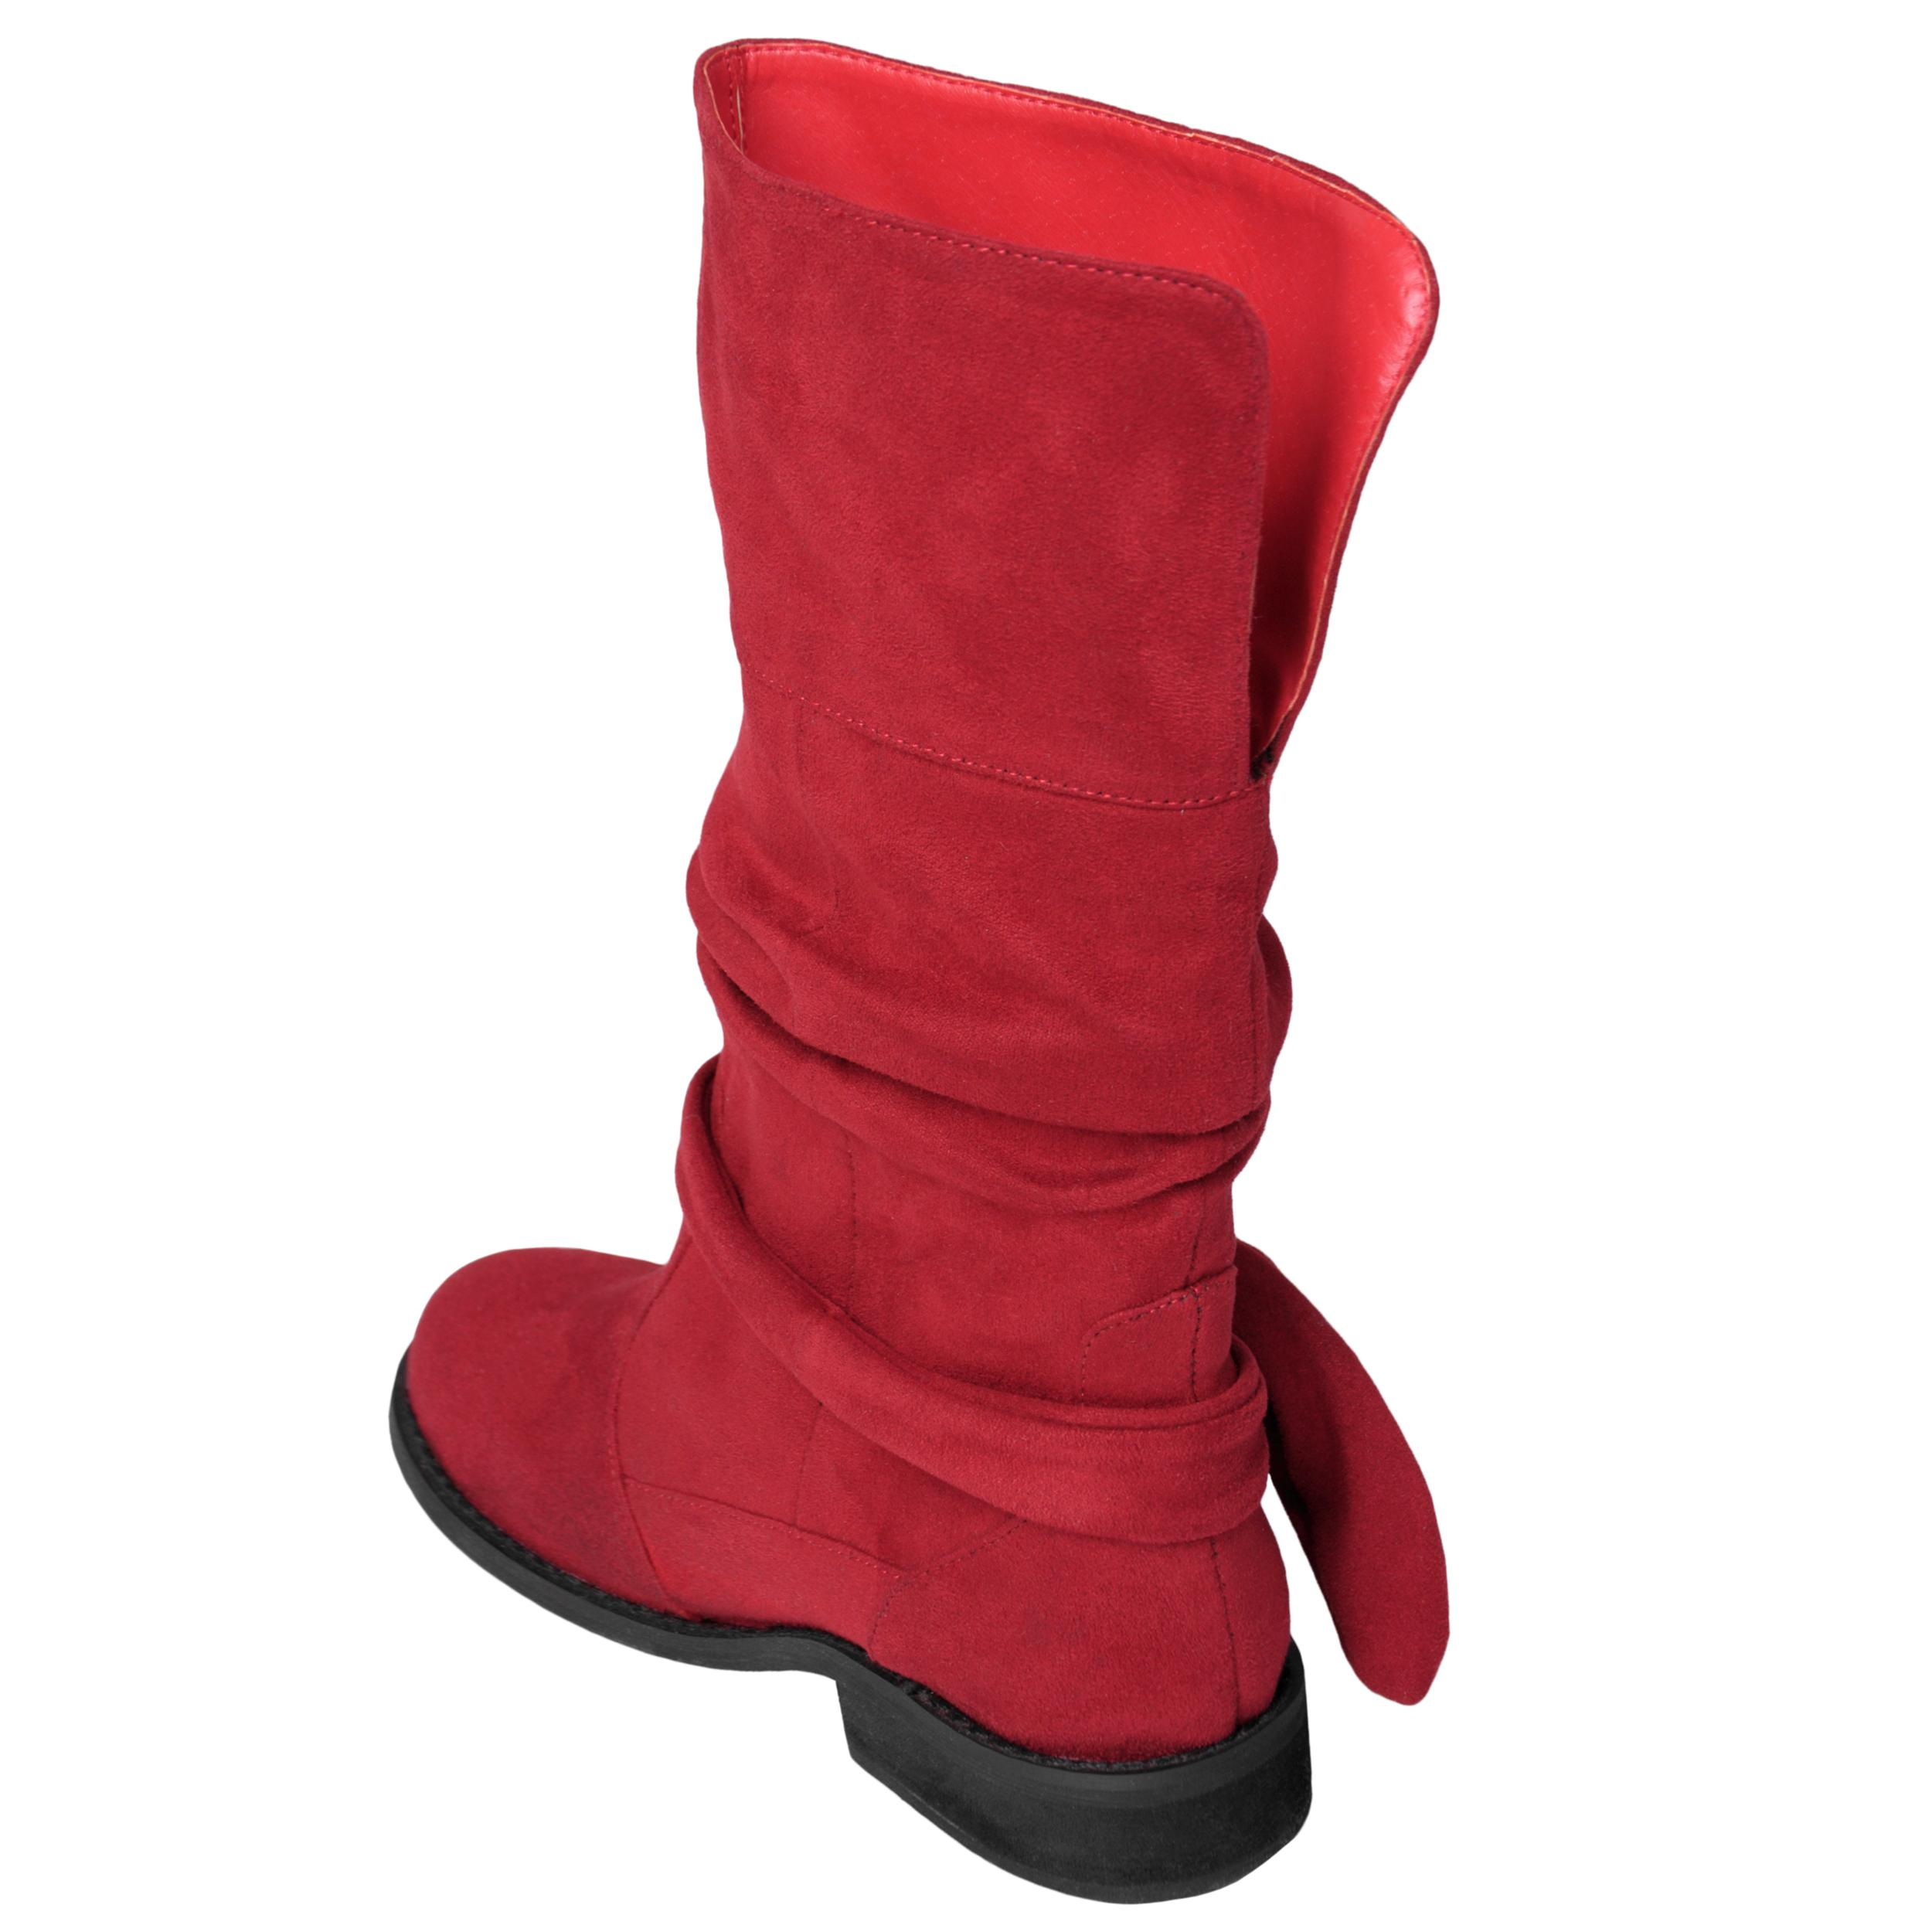 Two Lips Brand Girl's 'TooBootleg' Knot Detail Slouchy Mid-calf Boot - Thumbnail 1